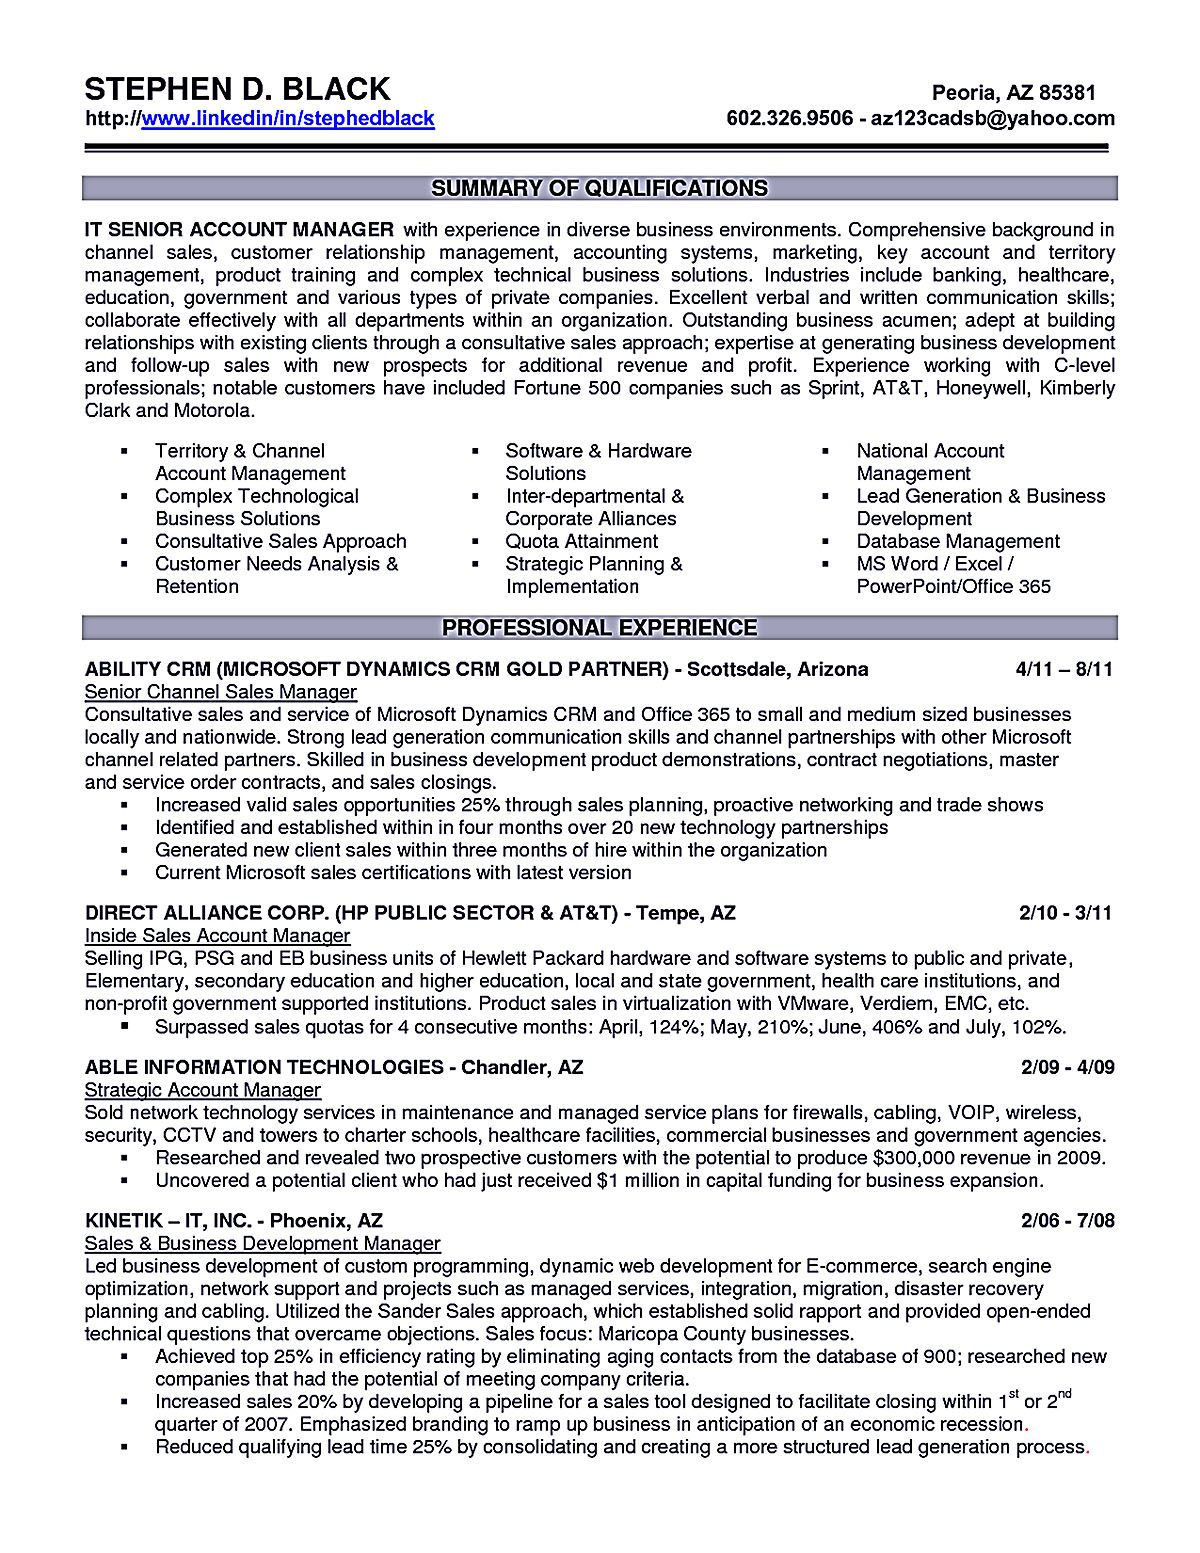 account executive resume examples account executive resume is like your weapon to get the job you want related to the account executive position - Account Executive Resume Sample